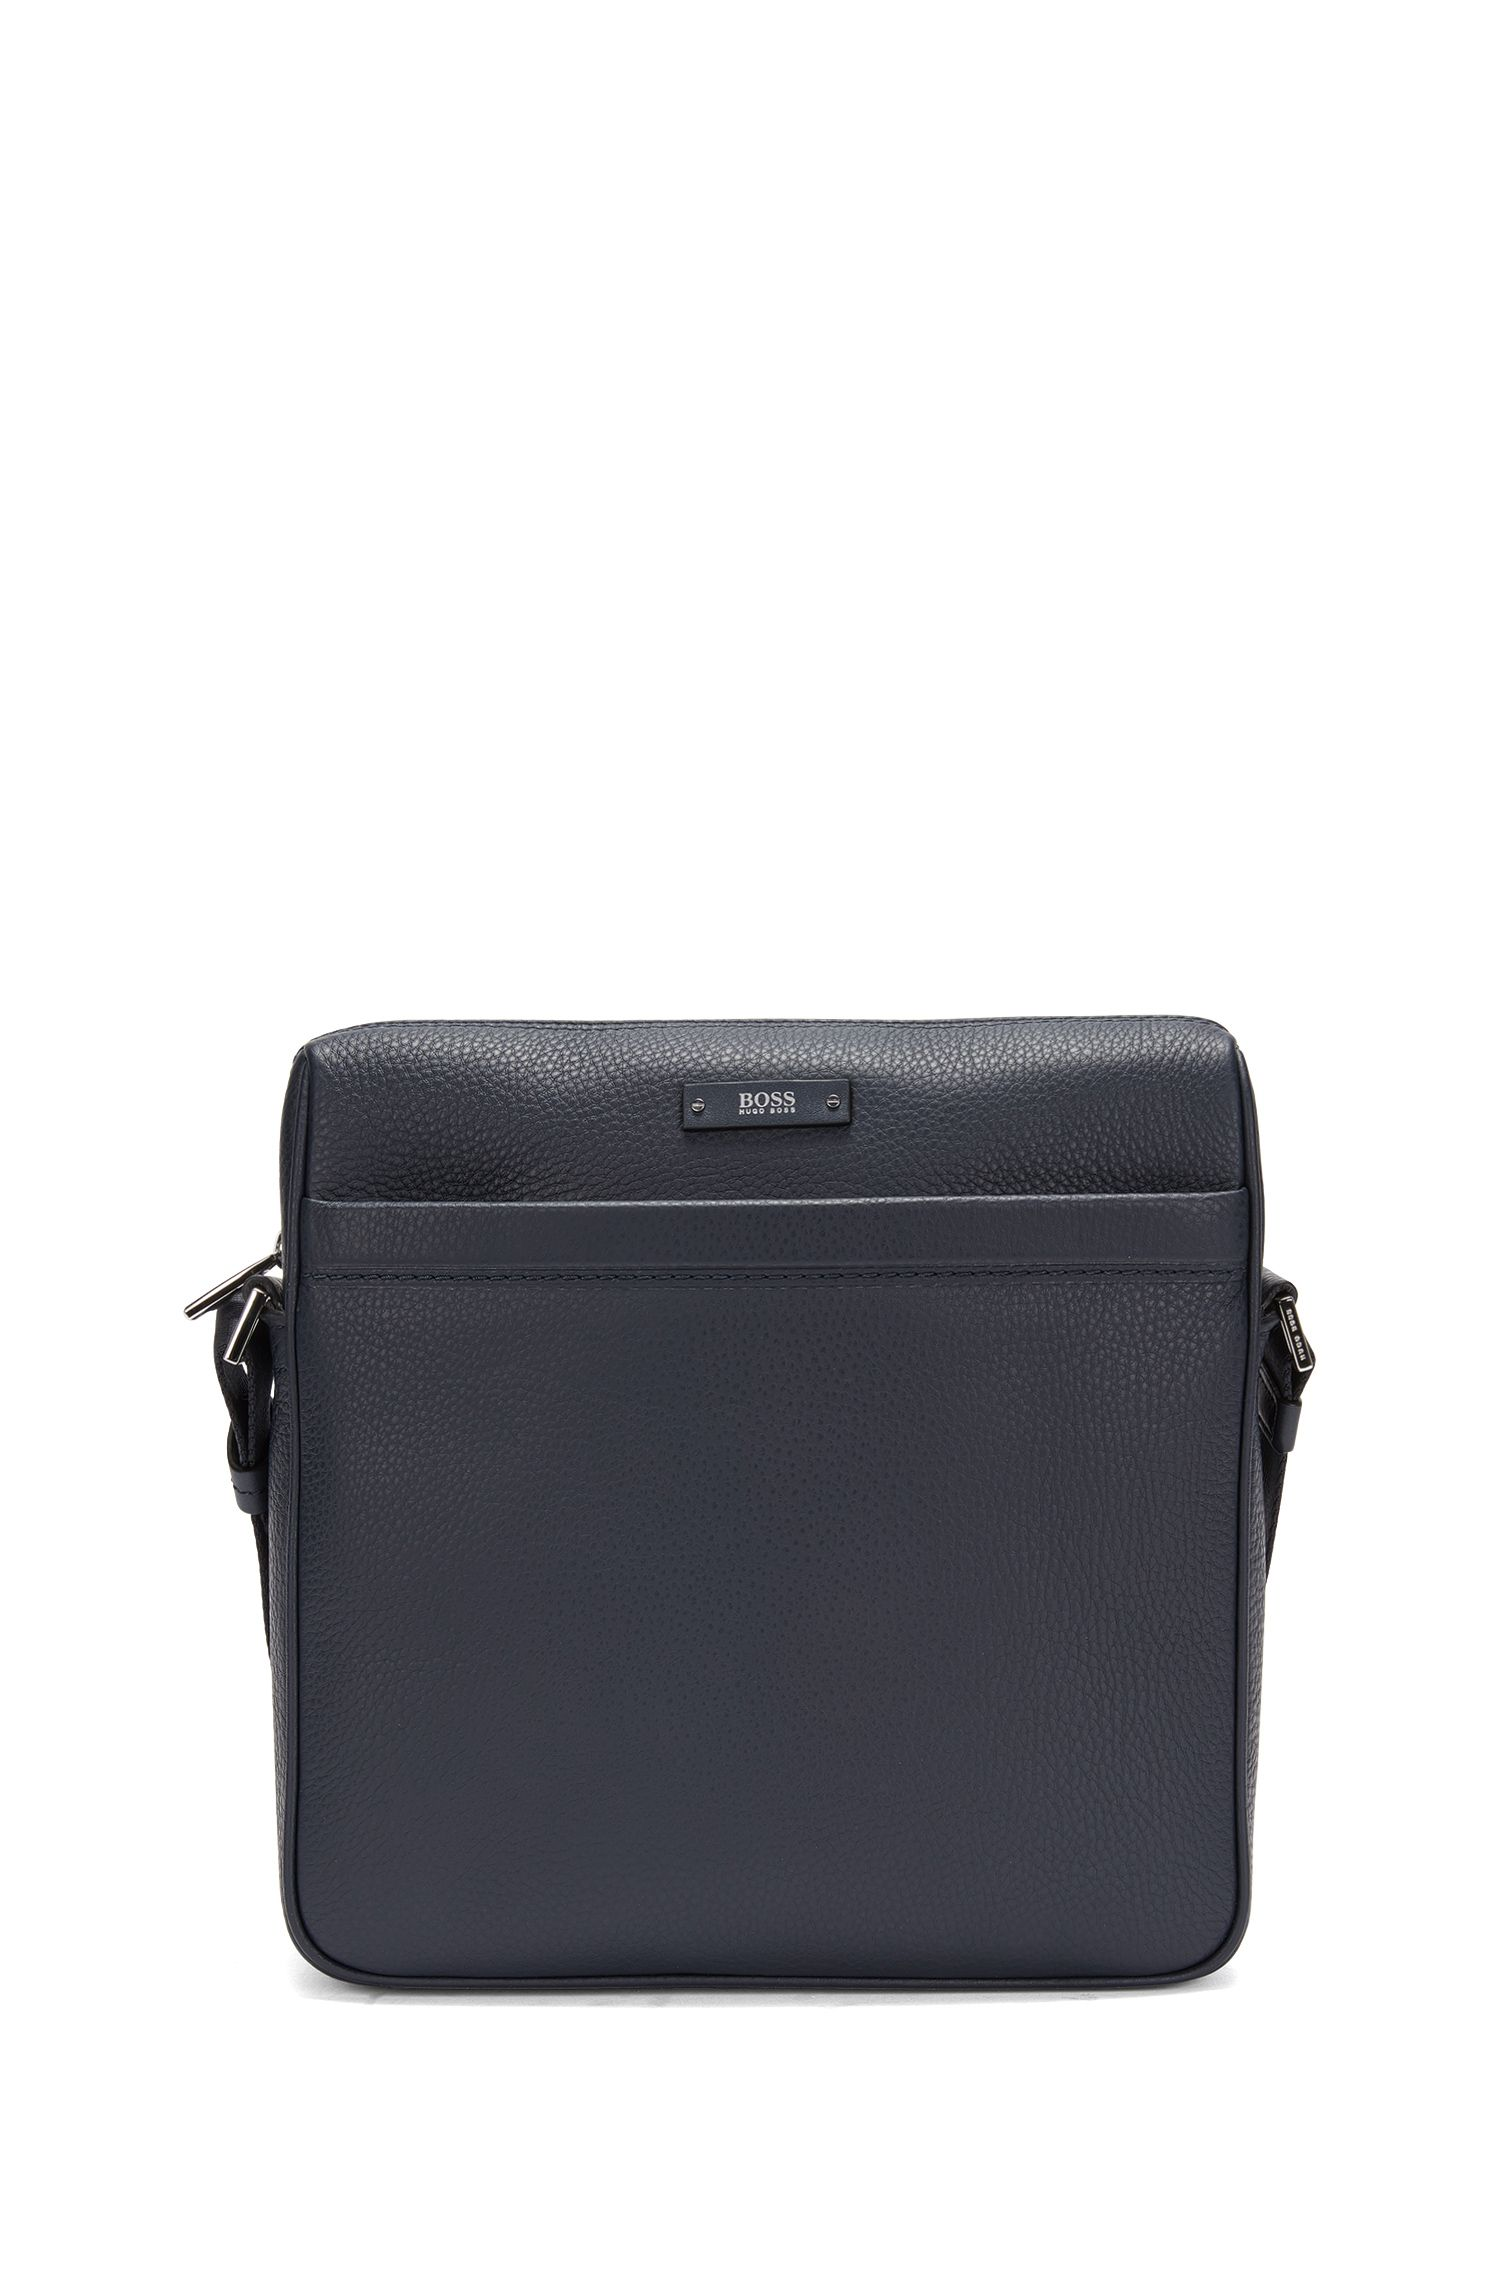 BOSS Travel Line reporter bag in grained leather